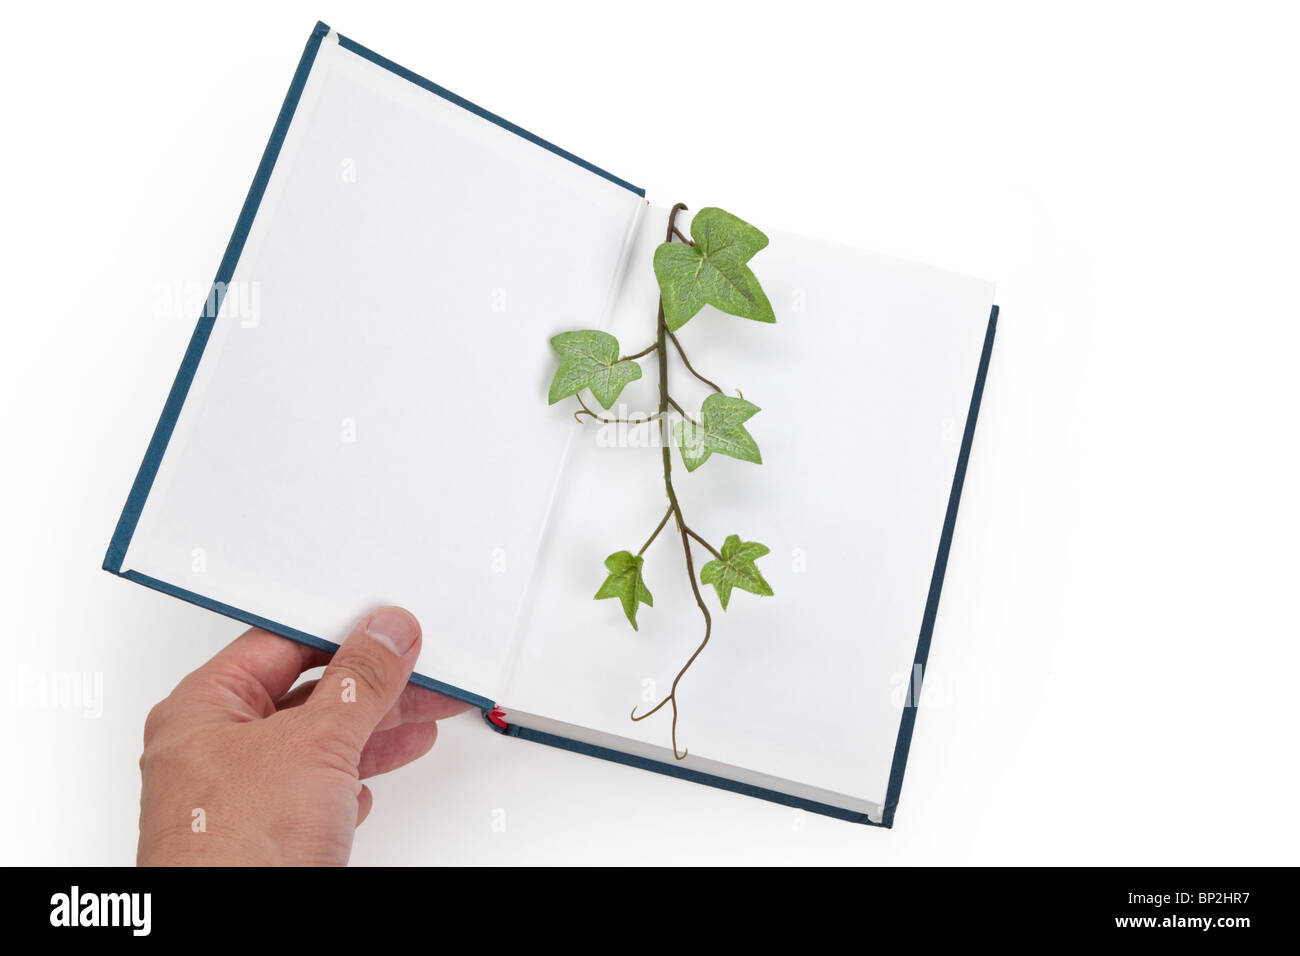 Blue book and sprout, education concept - Stock Image